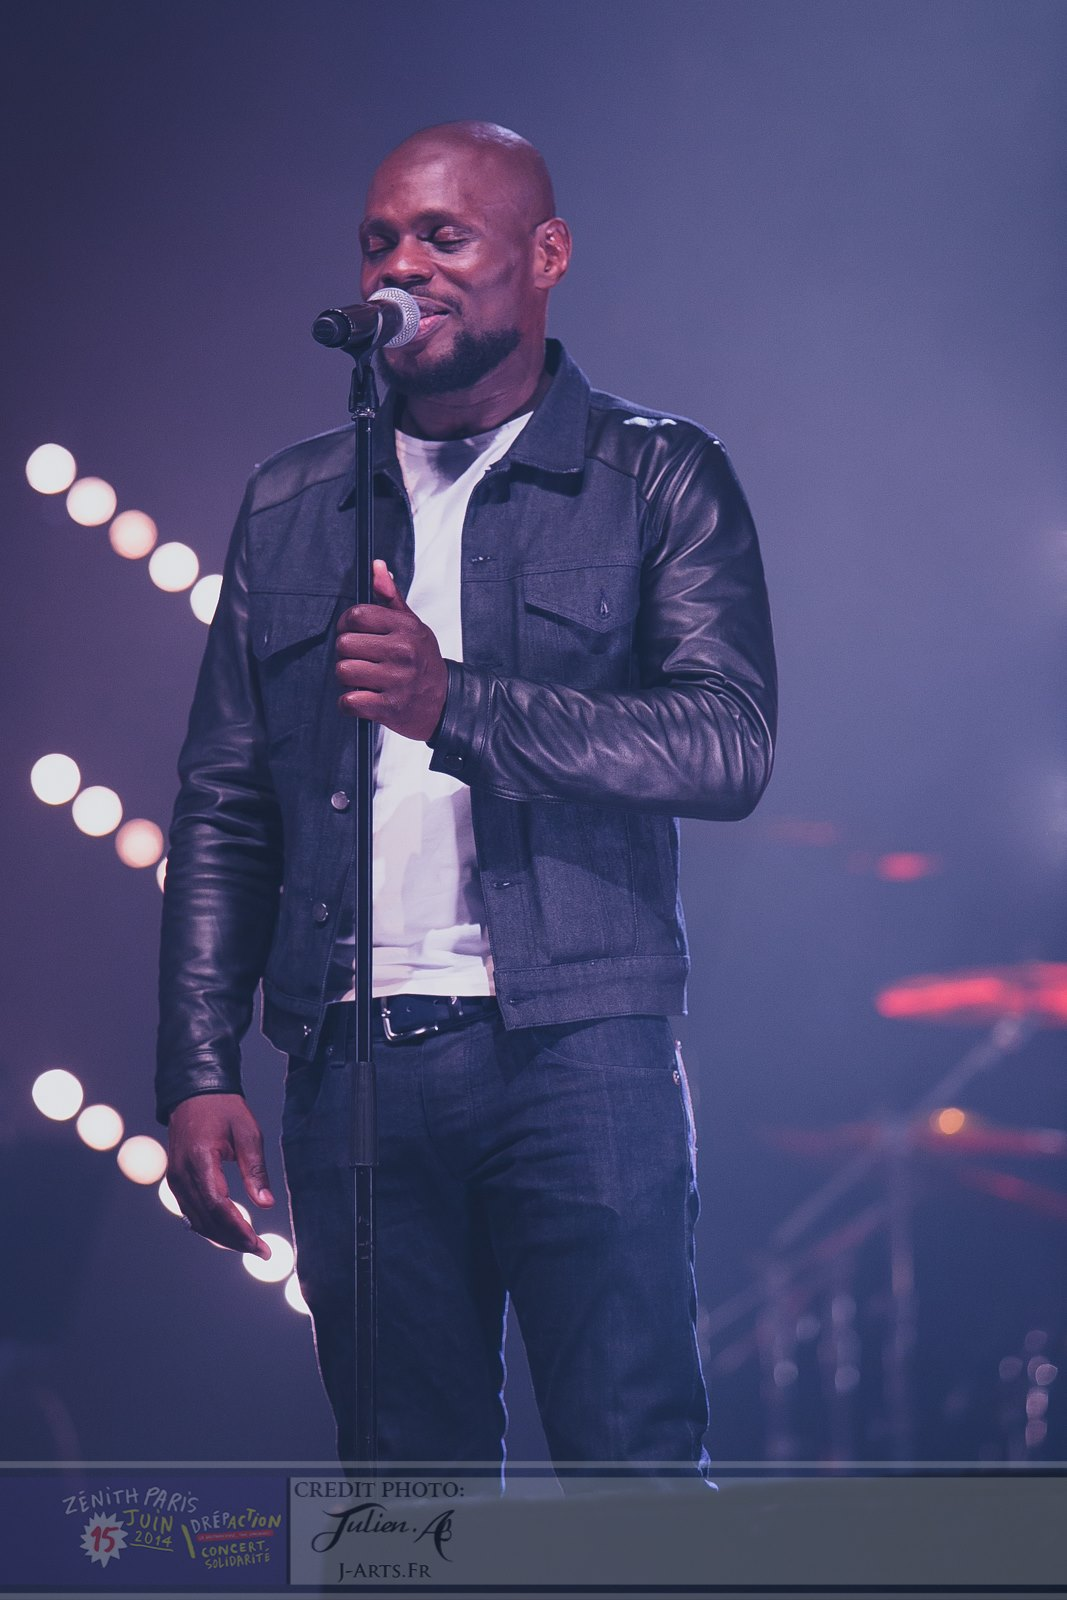 Kery James pendant le Drépaction 2014